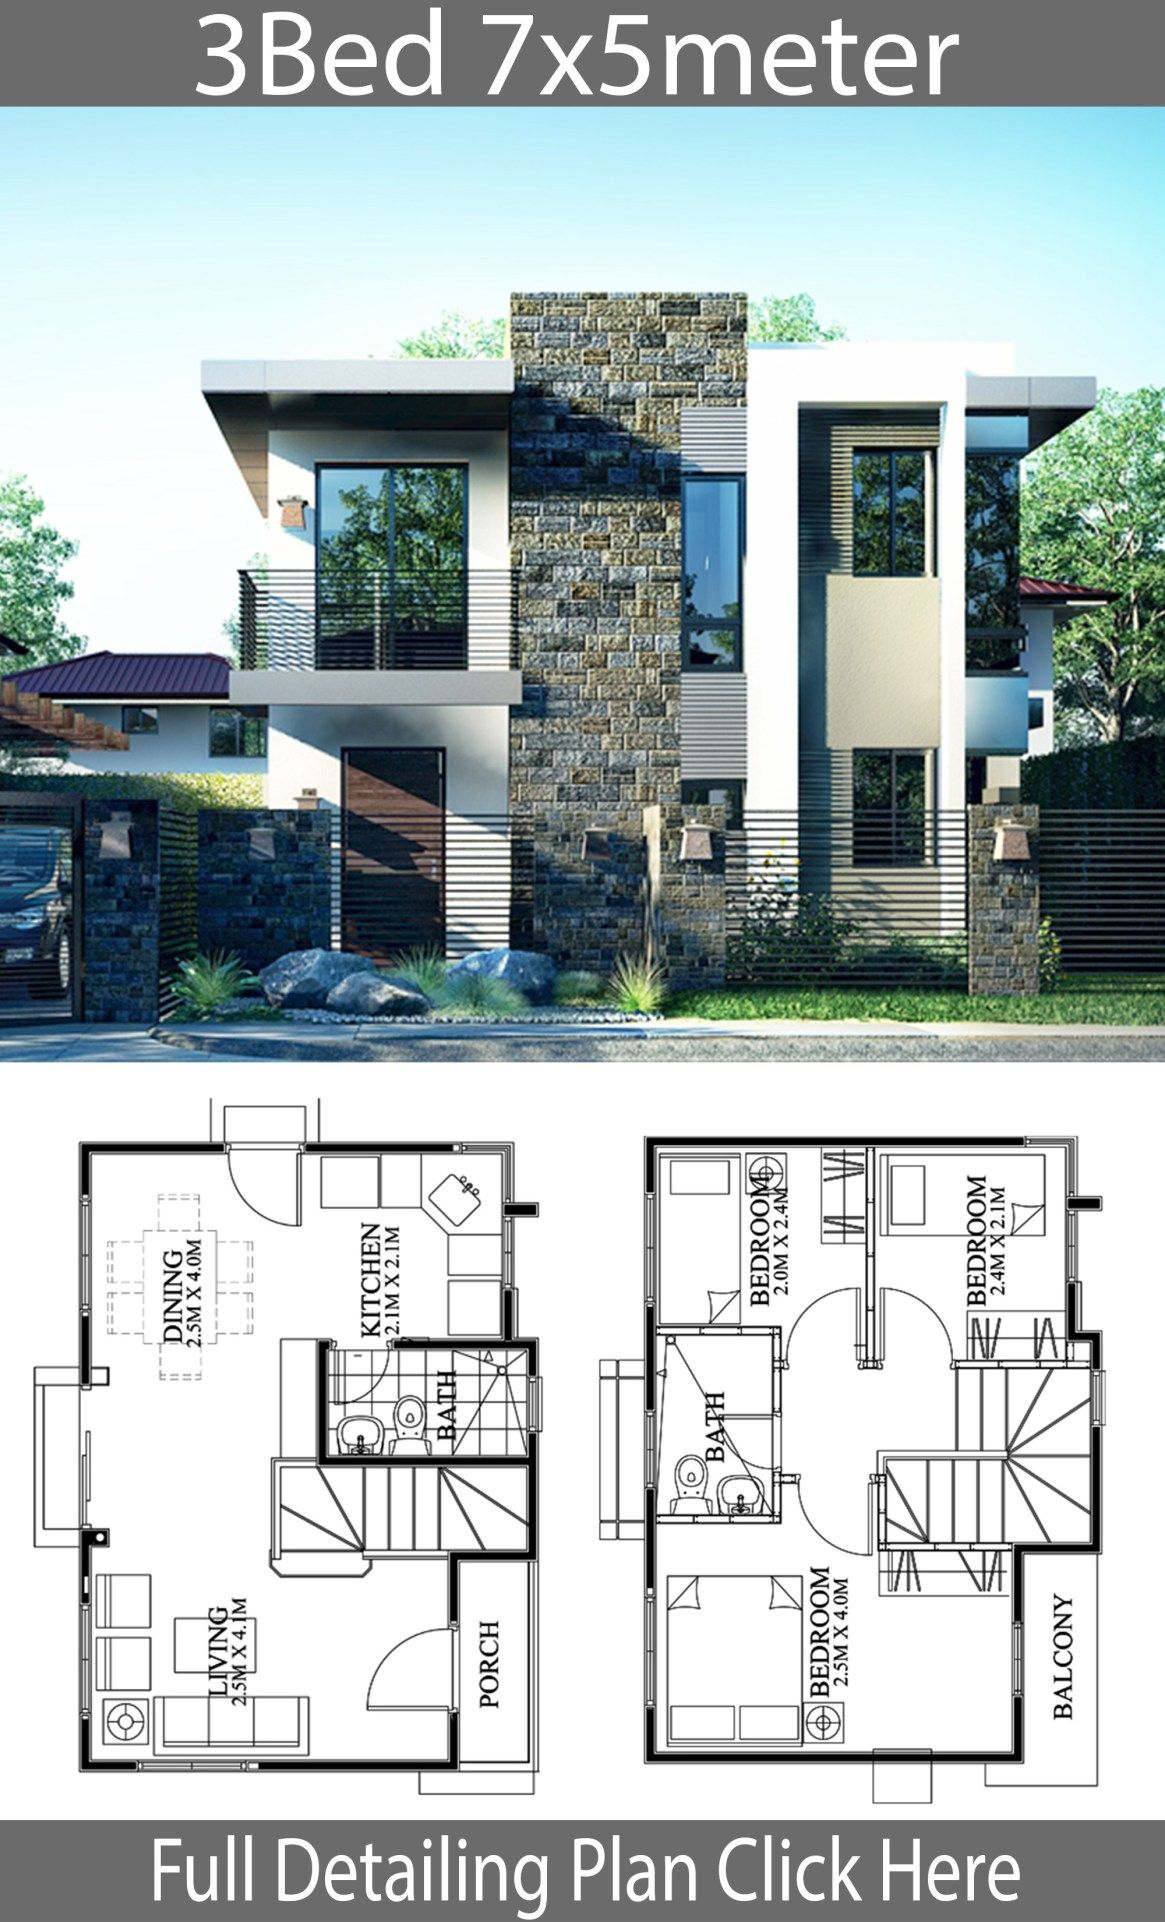 Small Home Design Plan 7x5m With 3 Bedrooms Home Design With Plansearch 2 Storey House Design Small House Design House Layout Plans